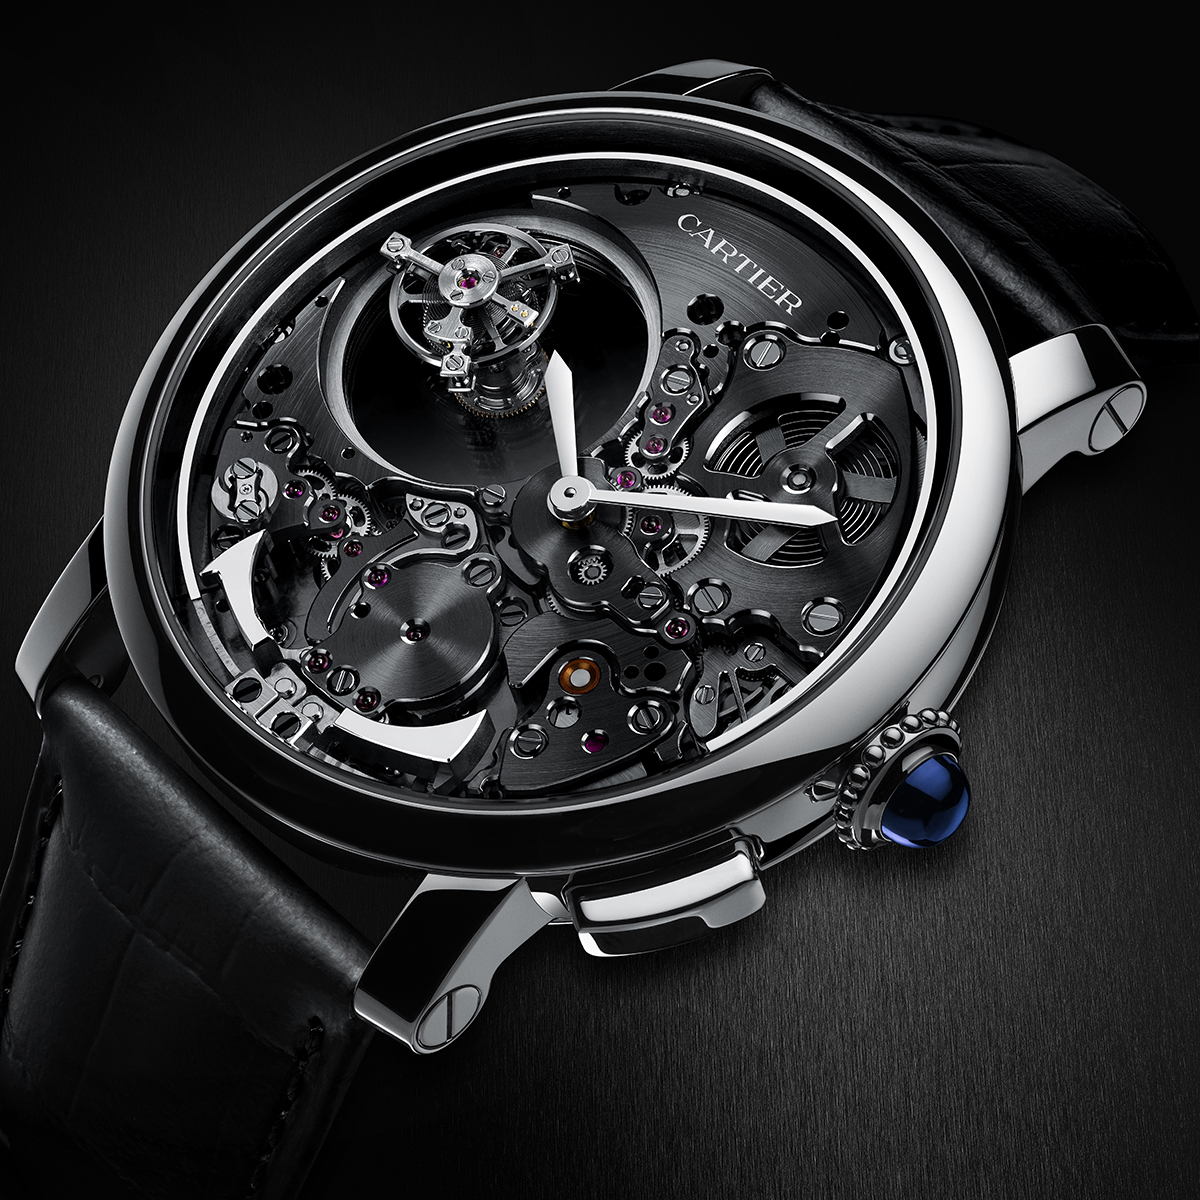 The Panther Prowls Again  Cartier Resurrects an Iconic Collection     Cartier  Rotonde de Cartier Minute Repeater Mysterious Double Tourbillon